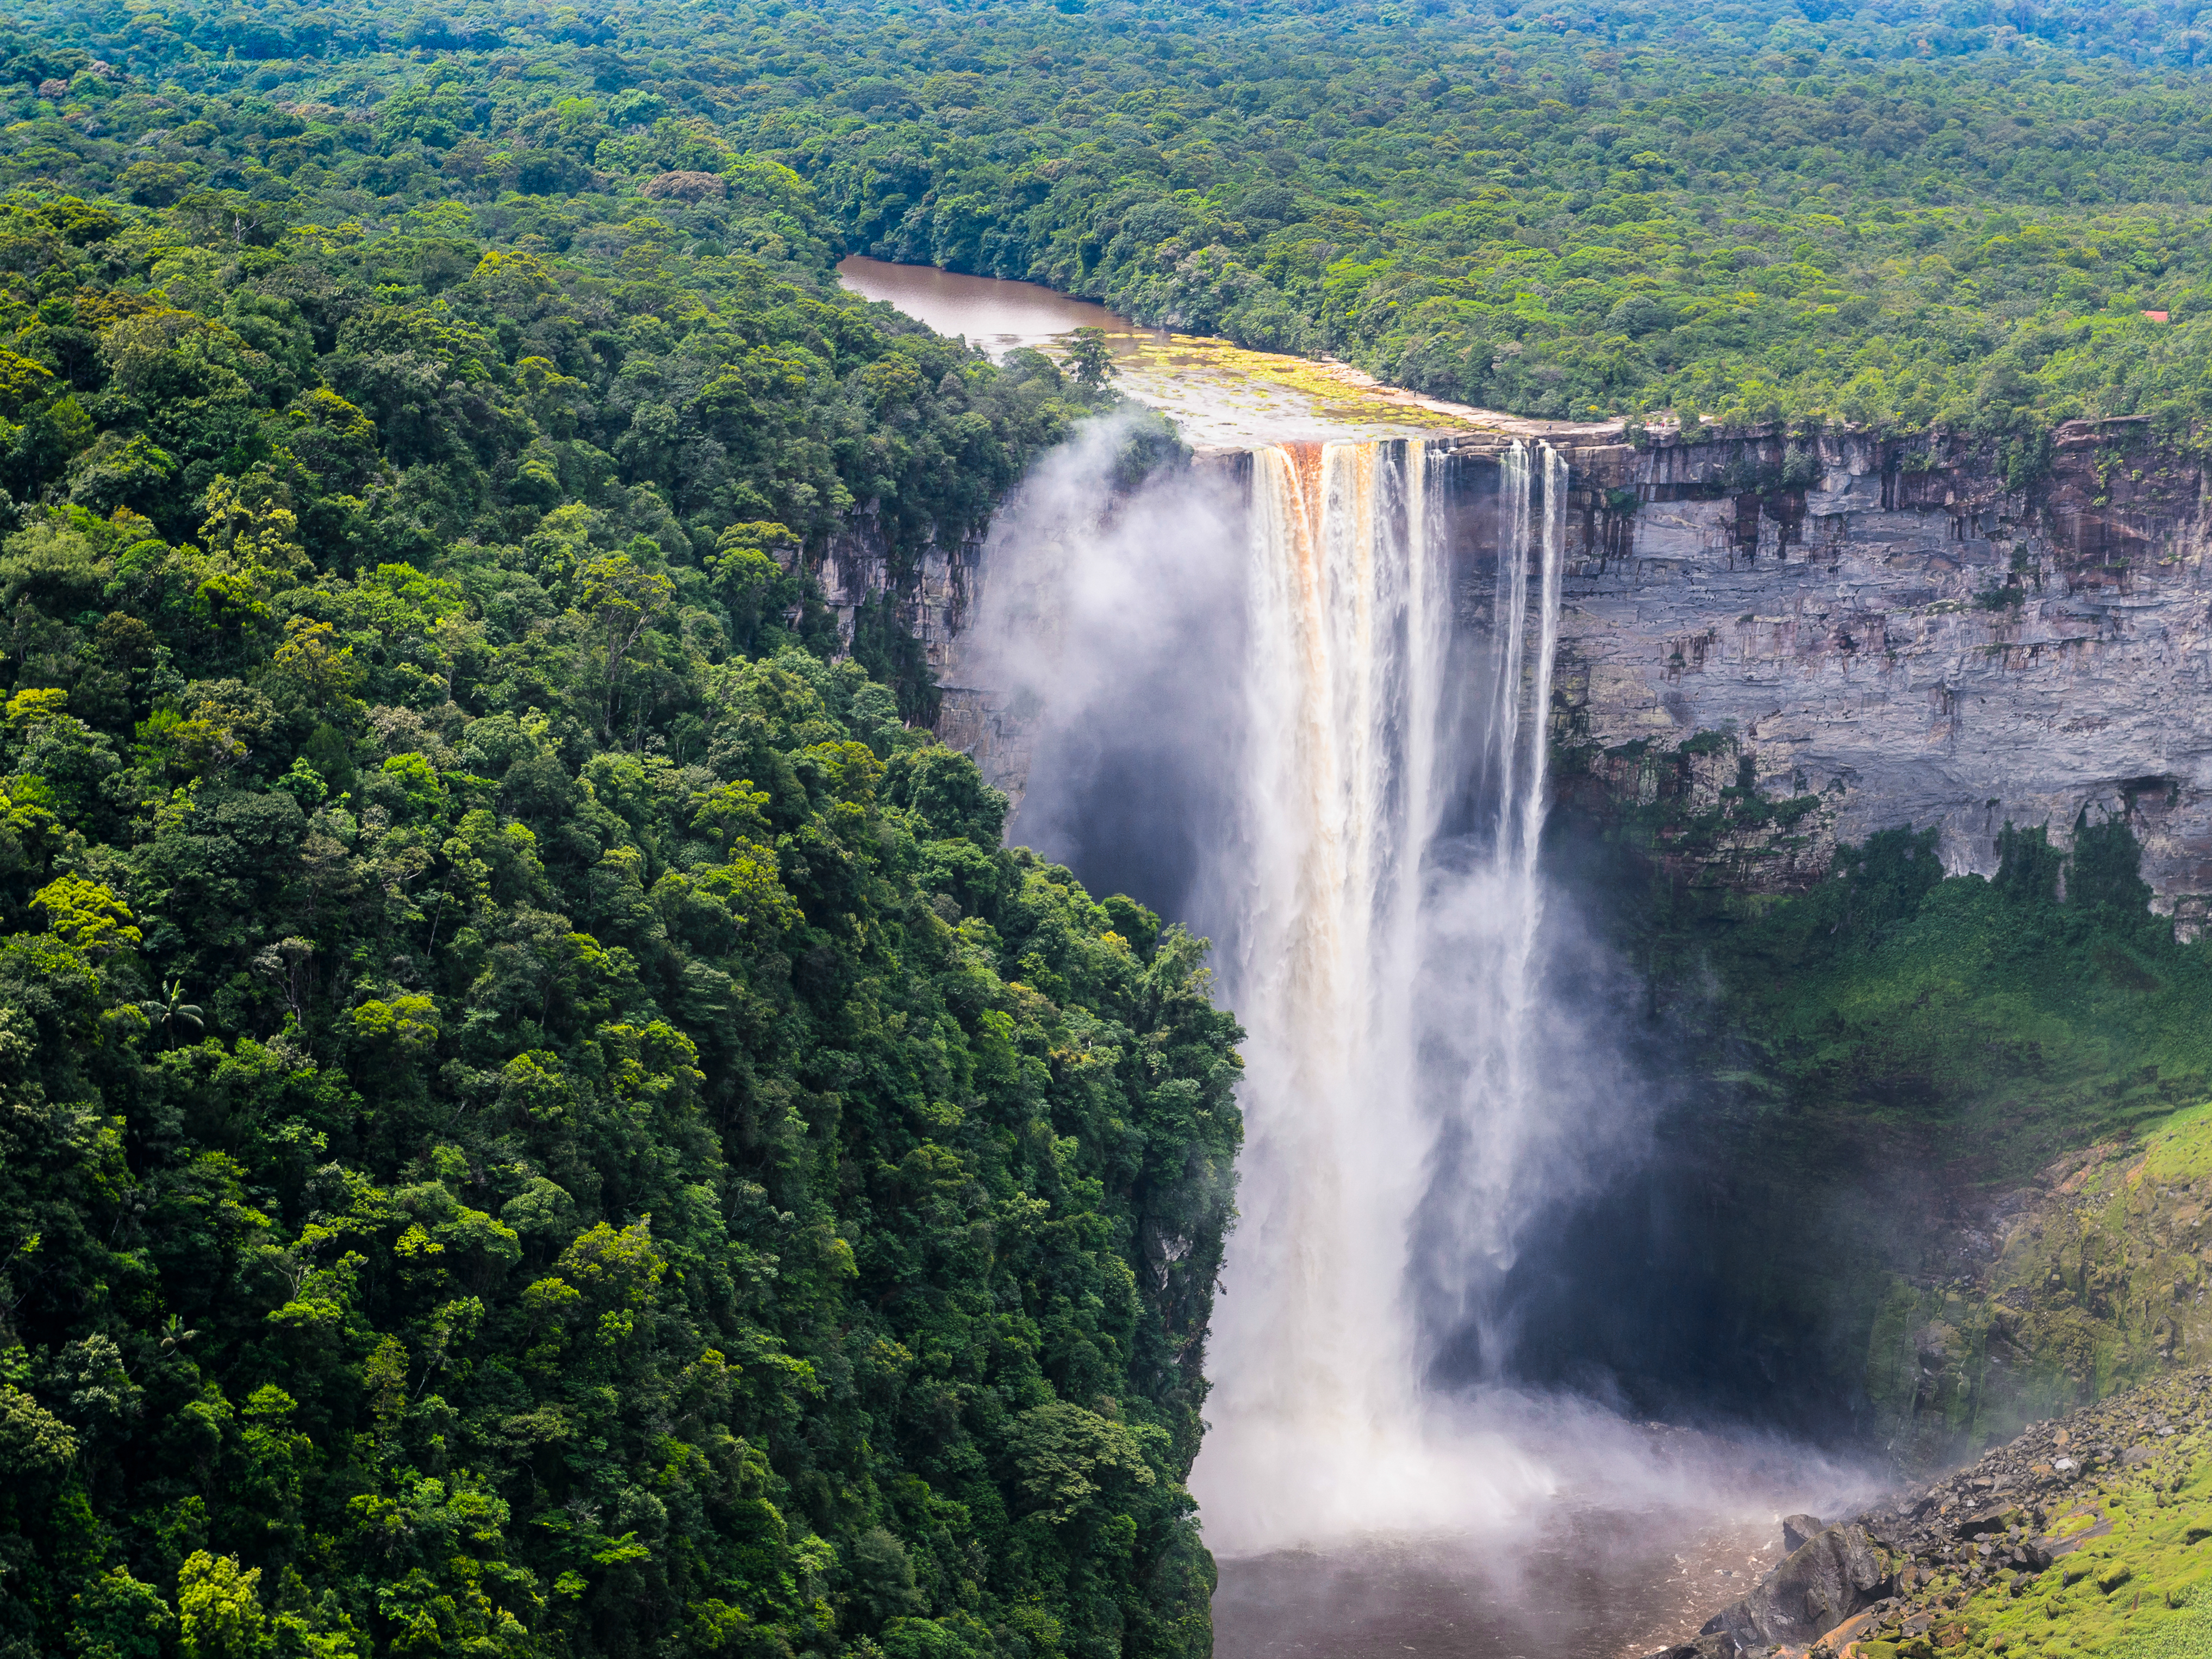 Kaieteur Falls, a waterfall on the Potaro River in central Essequibo Territory, Guyana, South America. Photo Credit: Shutterstock